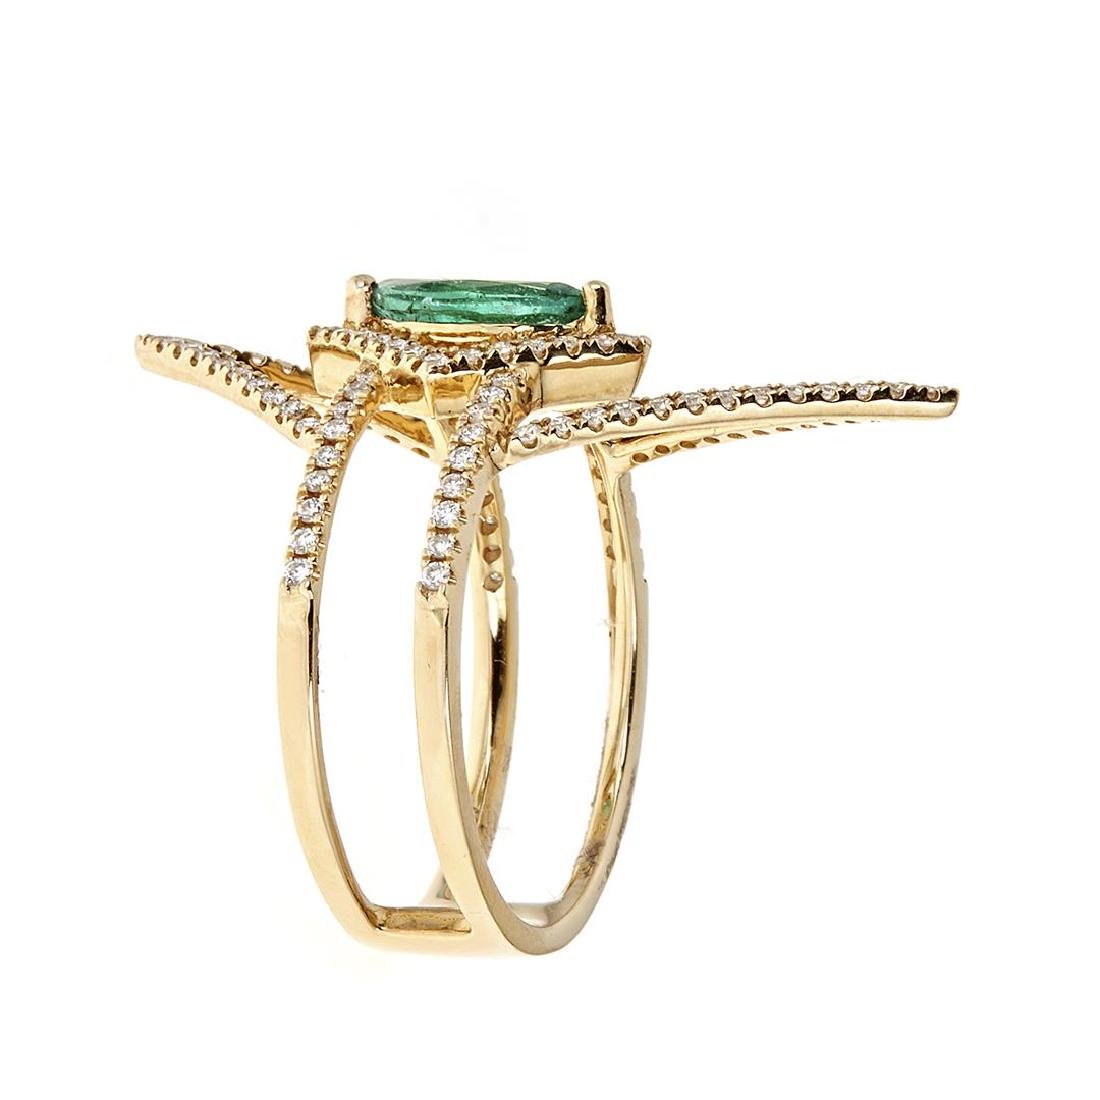 0.47 ctw Emerald and Diamond Ring - 18KT Yellow Gold